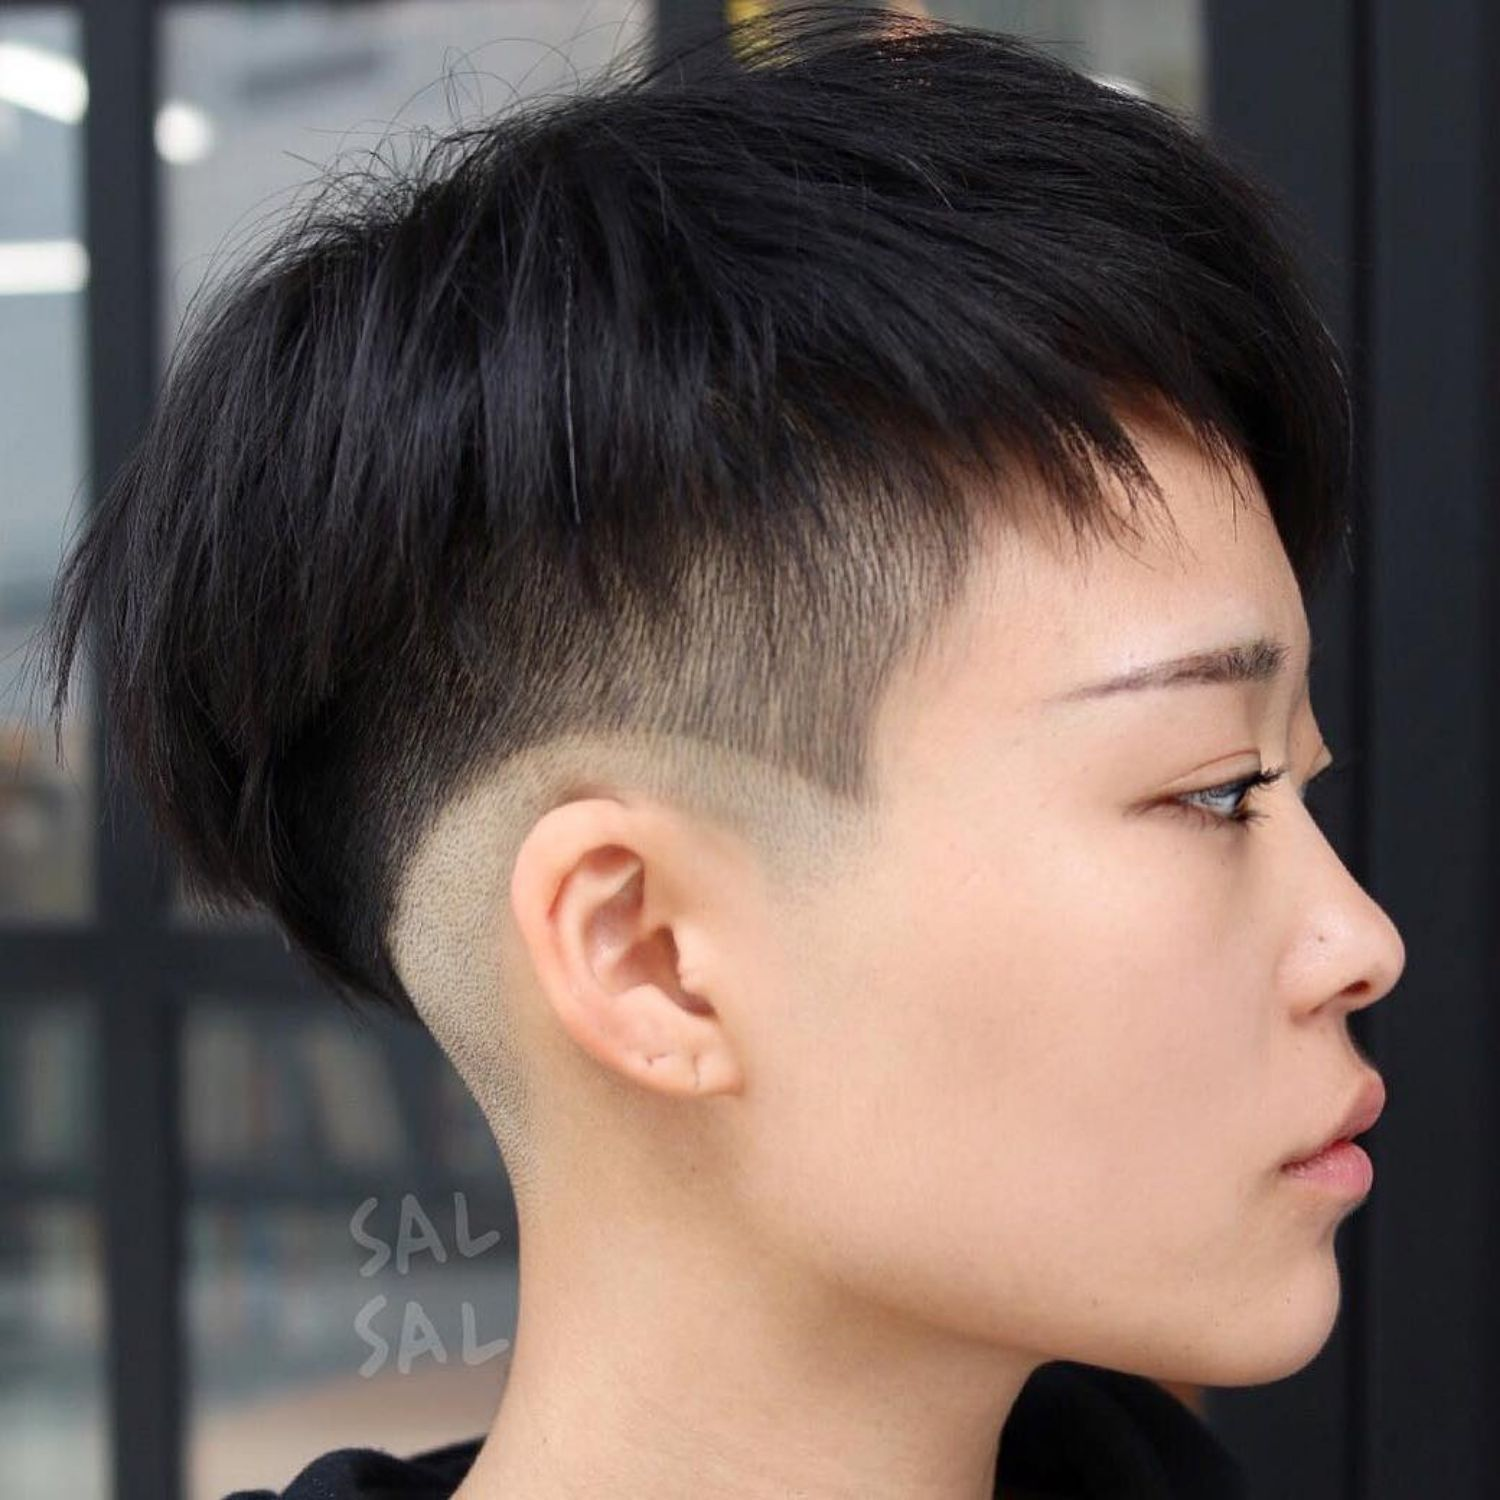 Pin on Asian short hair